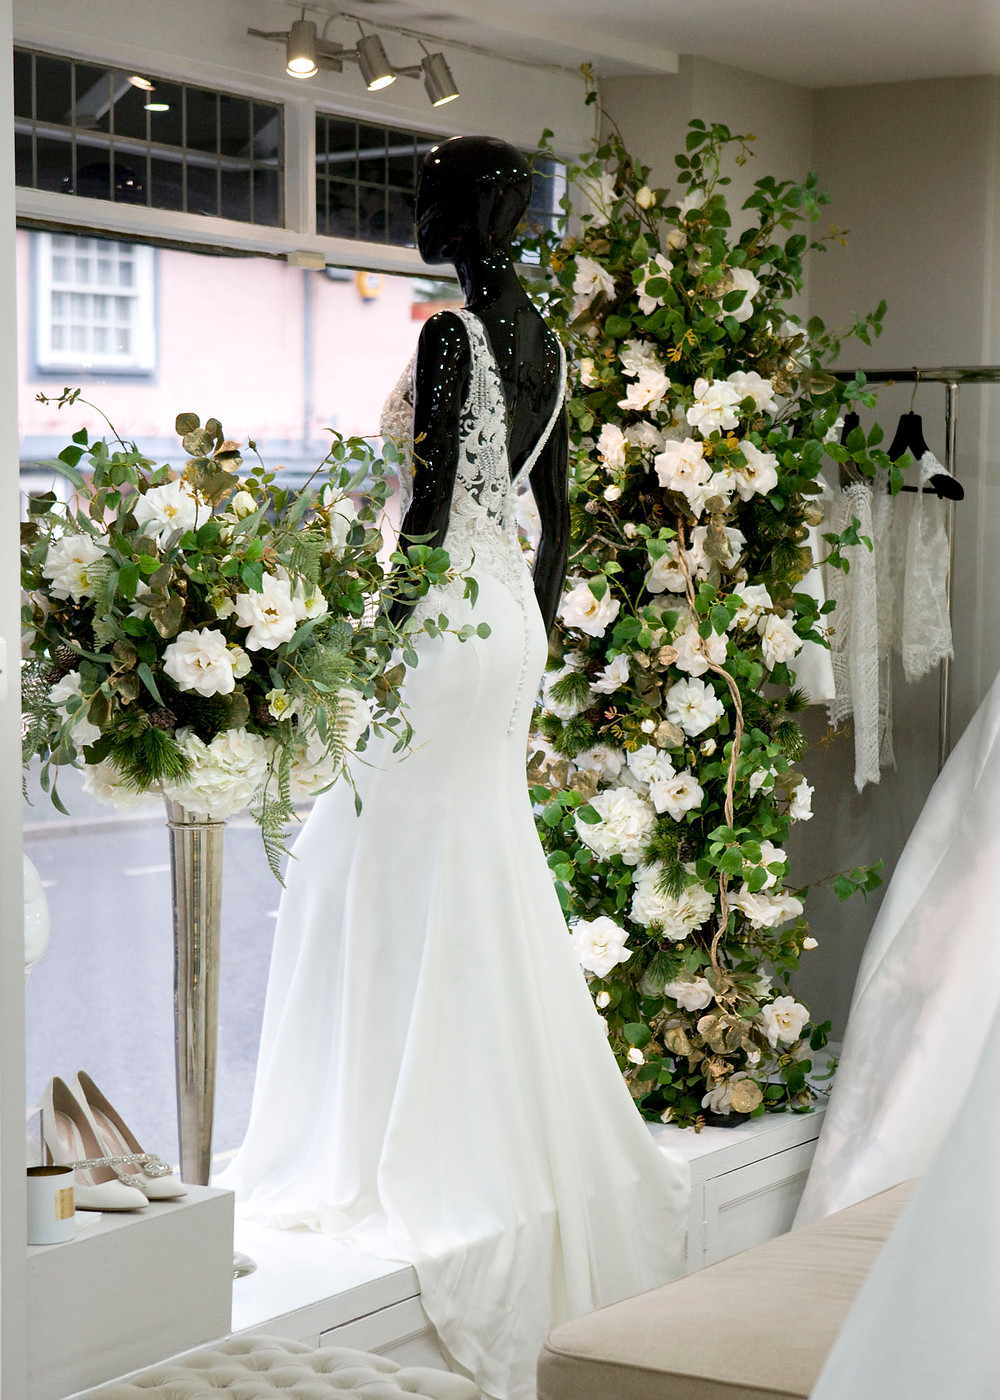 Faux Floral Columns and Table Centrepieces in Essex Bridal Wedding Shop